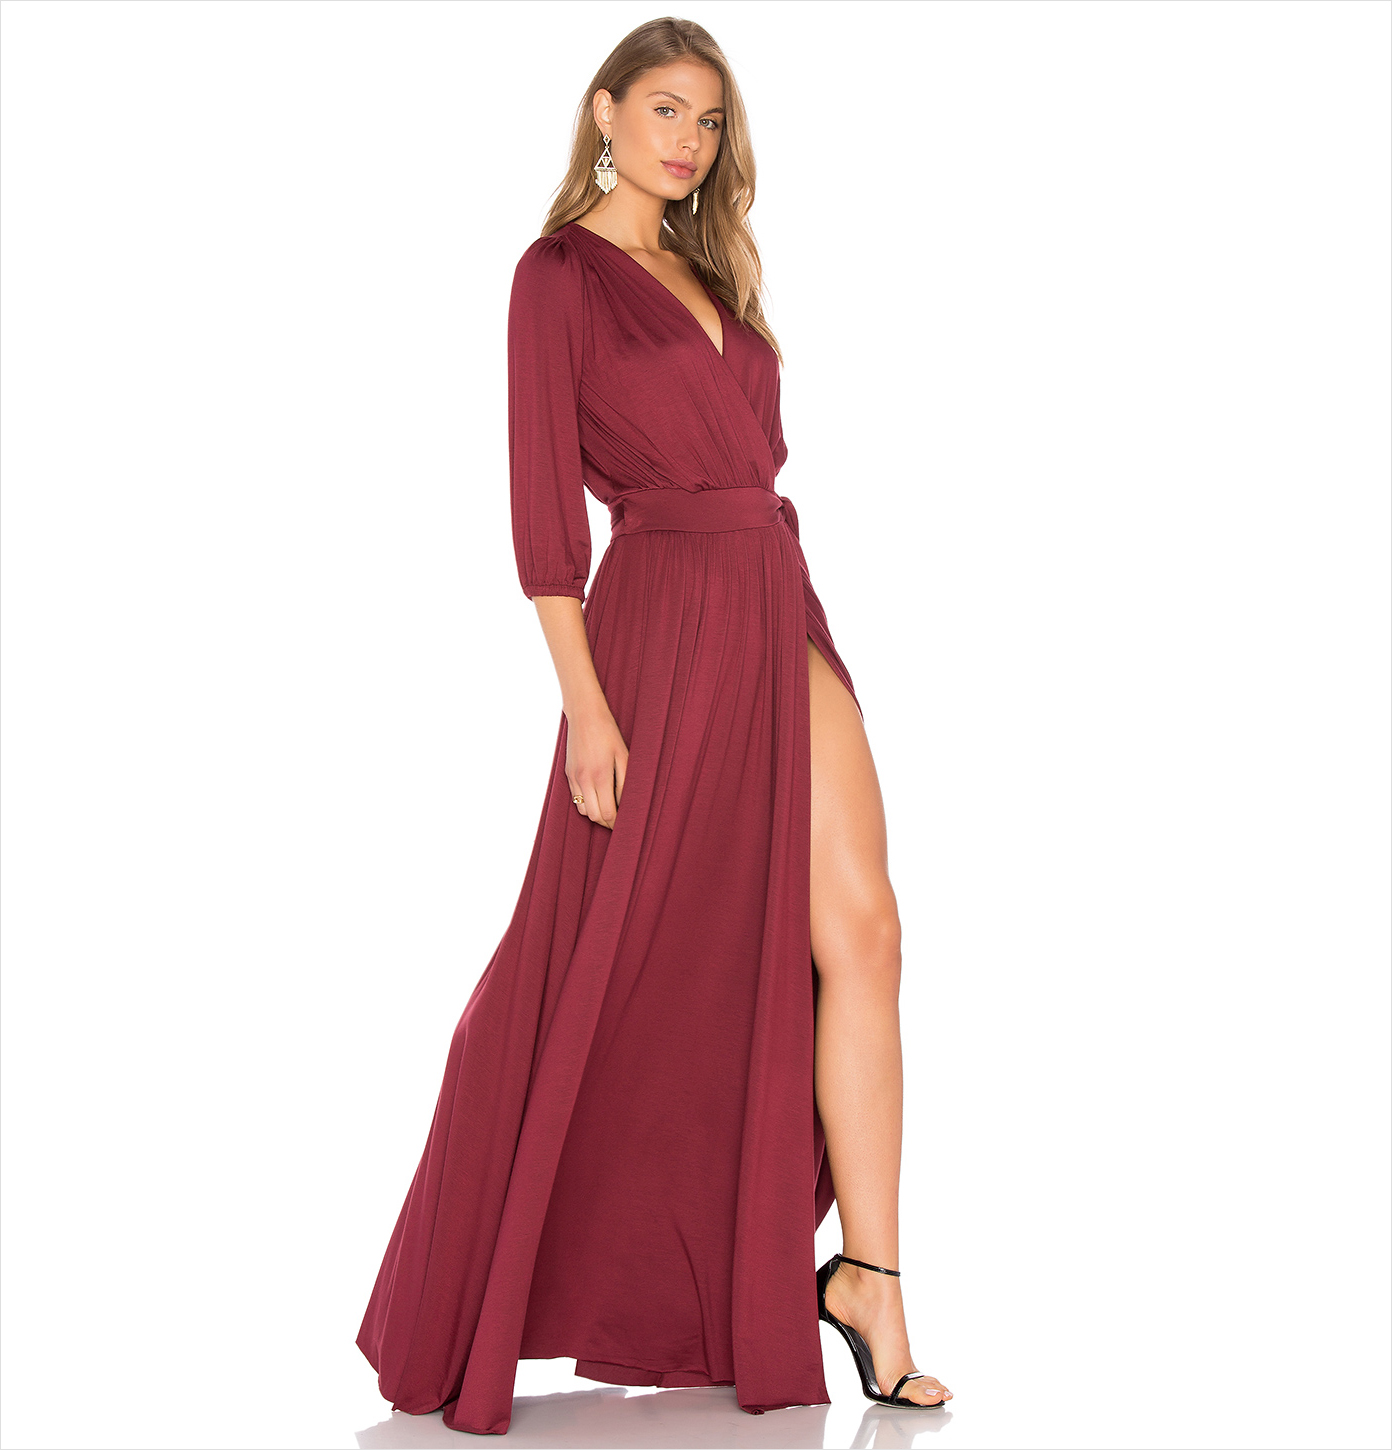 Wedding Guest Dress Ideas: Long Sleeve Dresses - Inside Weddings